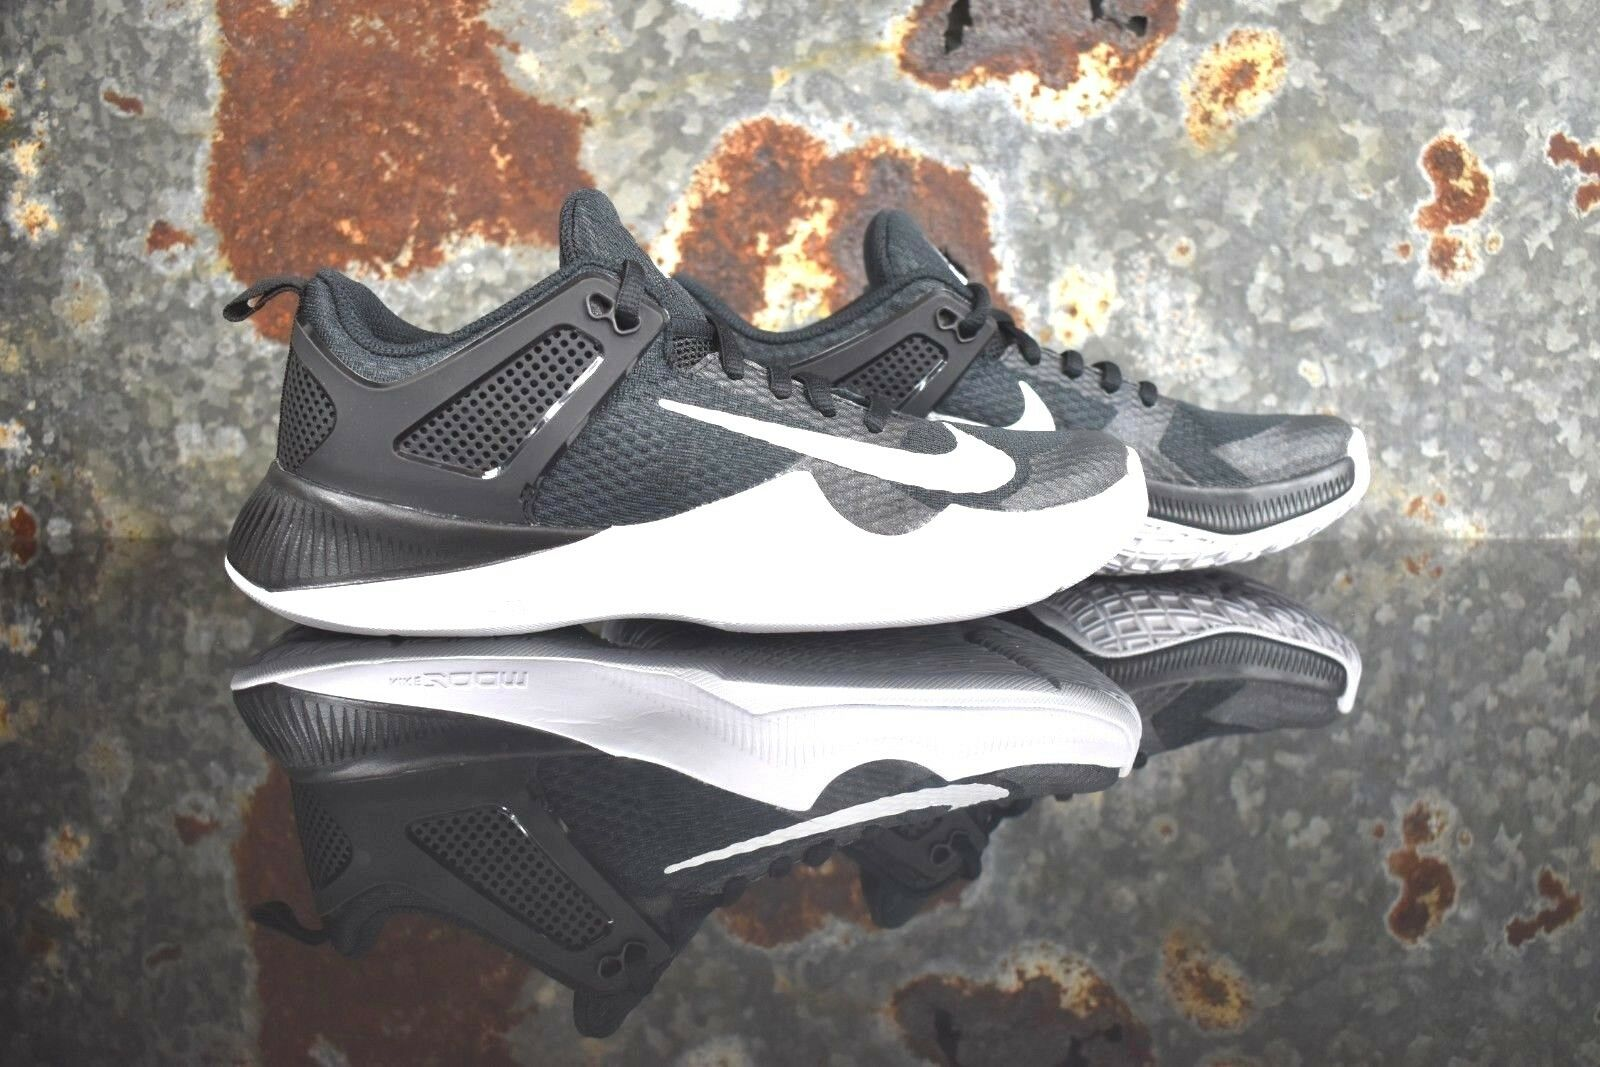 New Nike Air Zoom Hyperace Women's Volleyball Shoes Sz 6,7,8,8.5,12